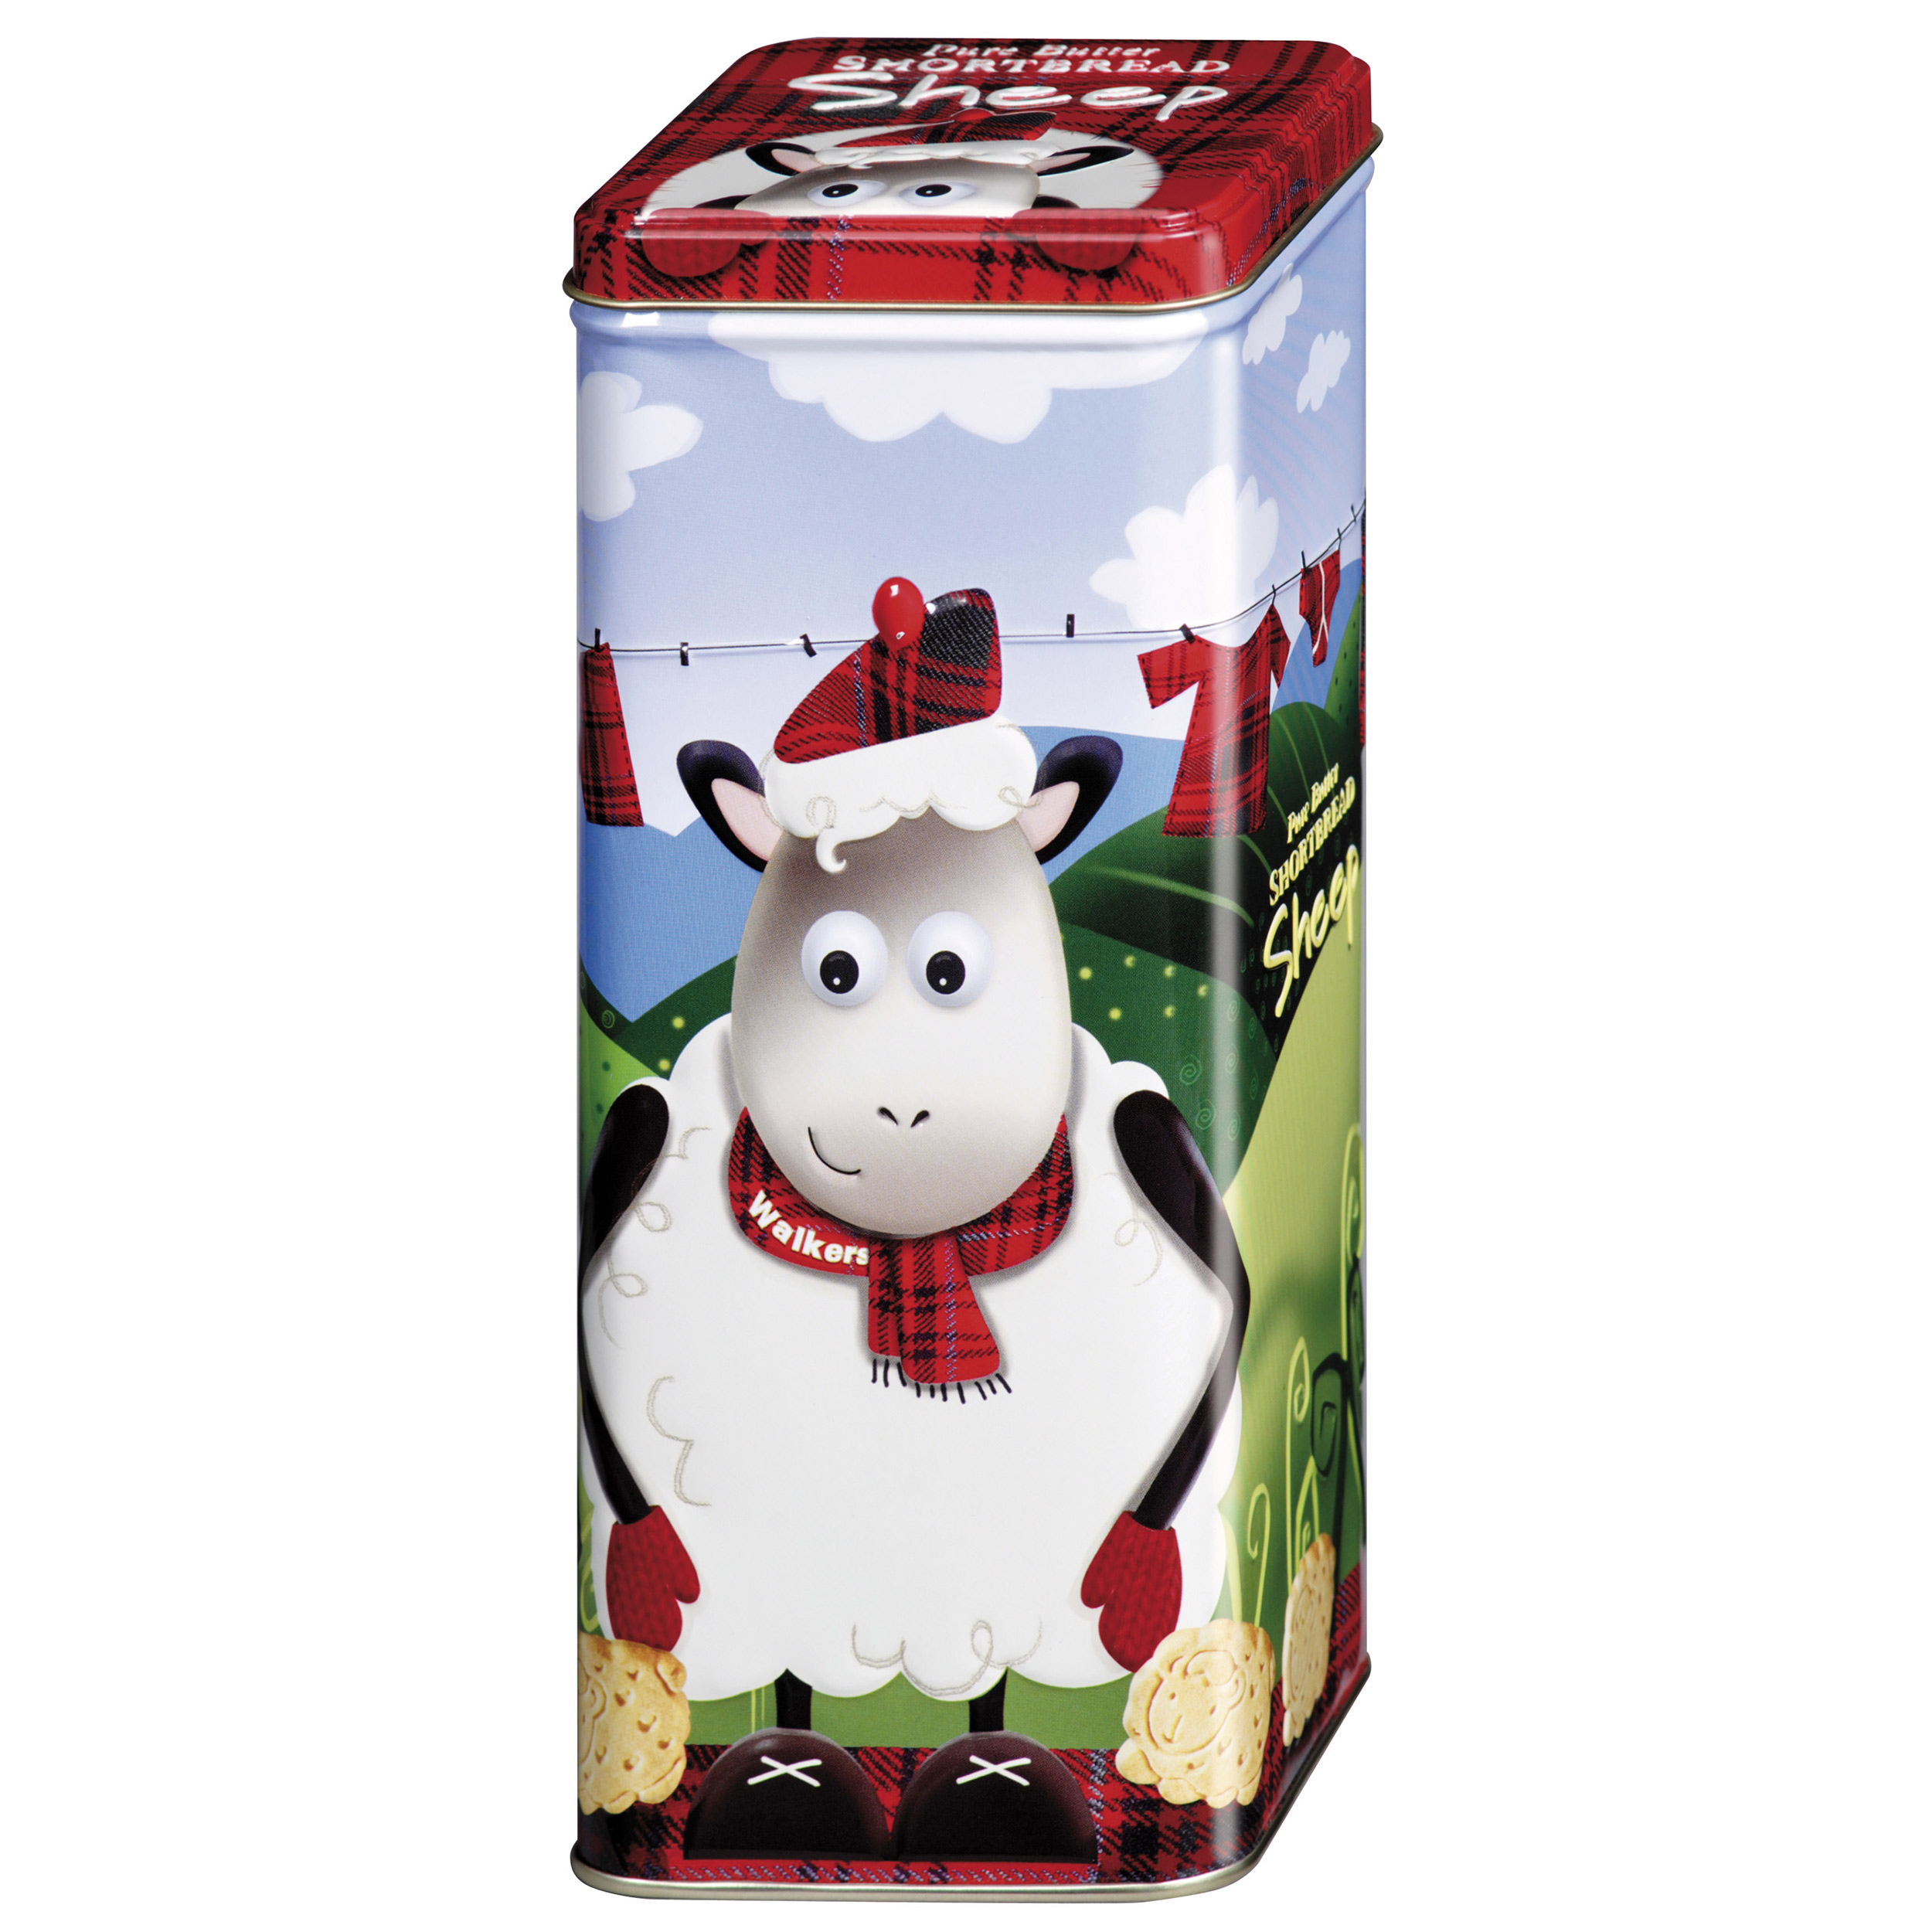 Momento Giftbox Walkers Shortbread Sheep Tin Scottish Shortbread Cookie